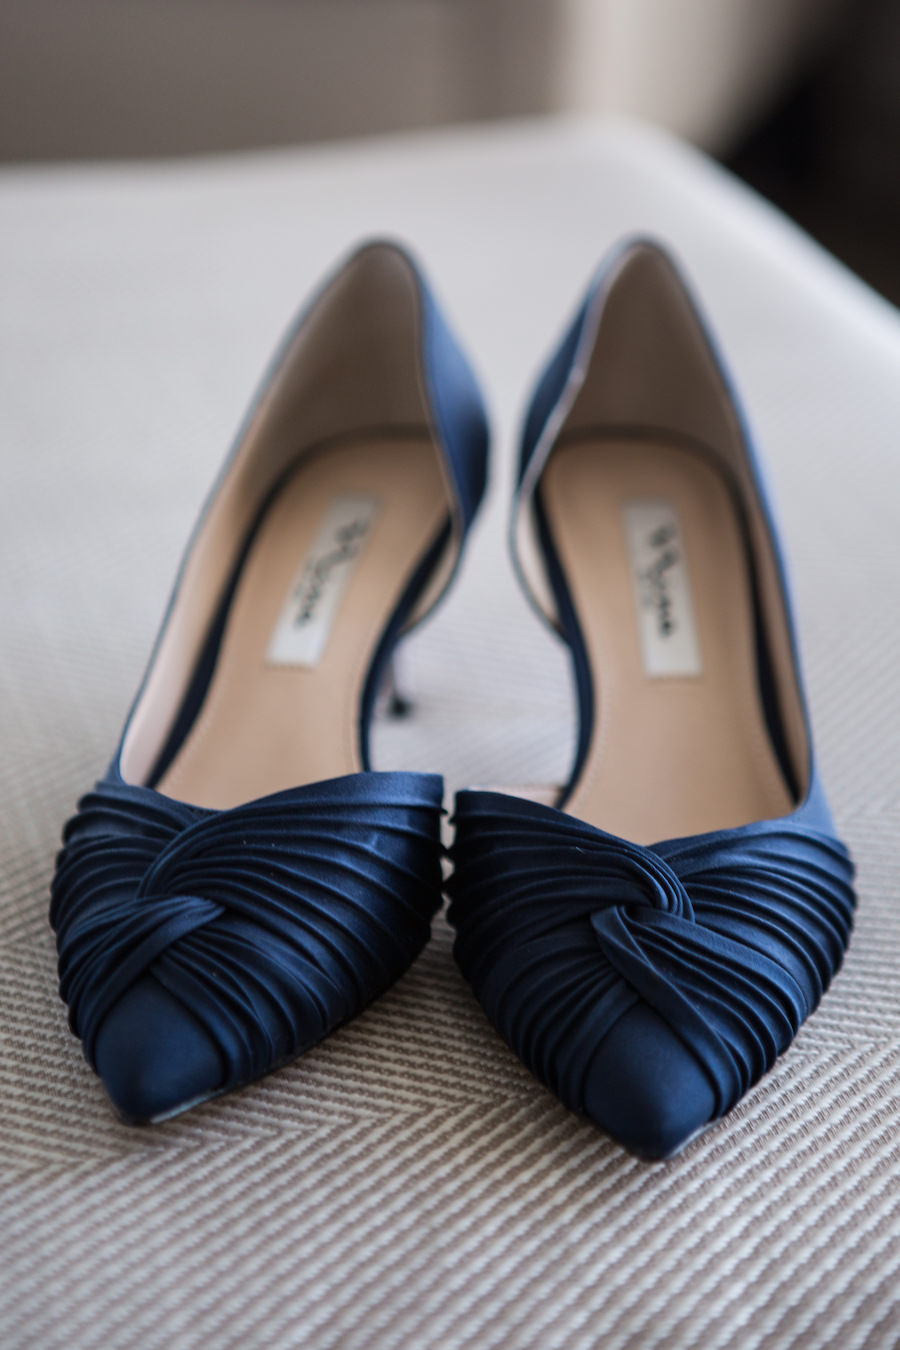 Classic Navy Blue Kitten Heel Pointed Toe Wedding Shoes